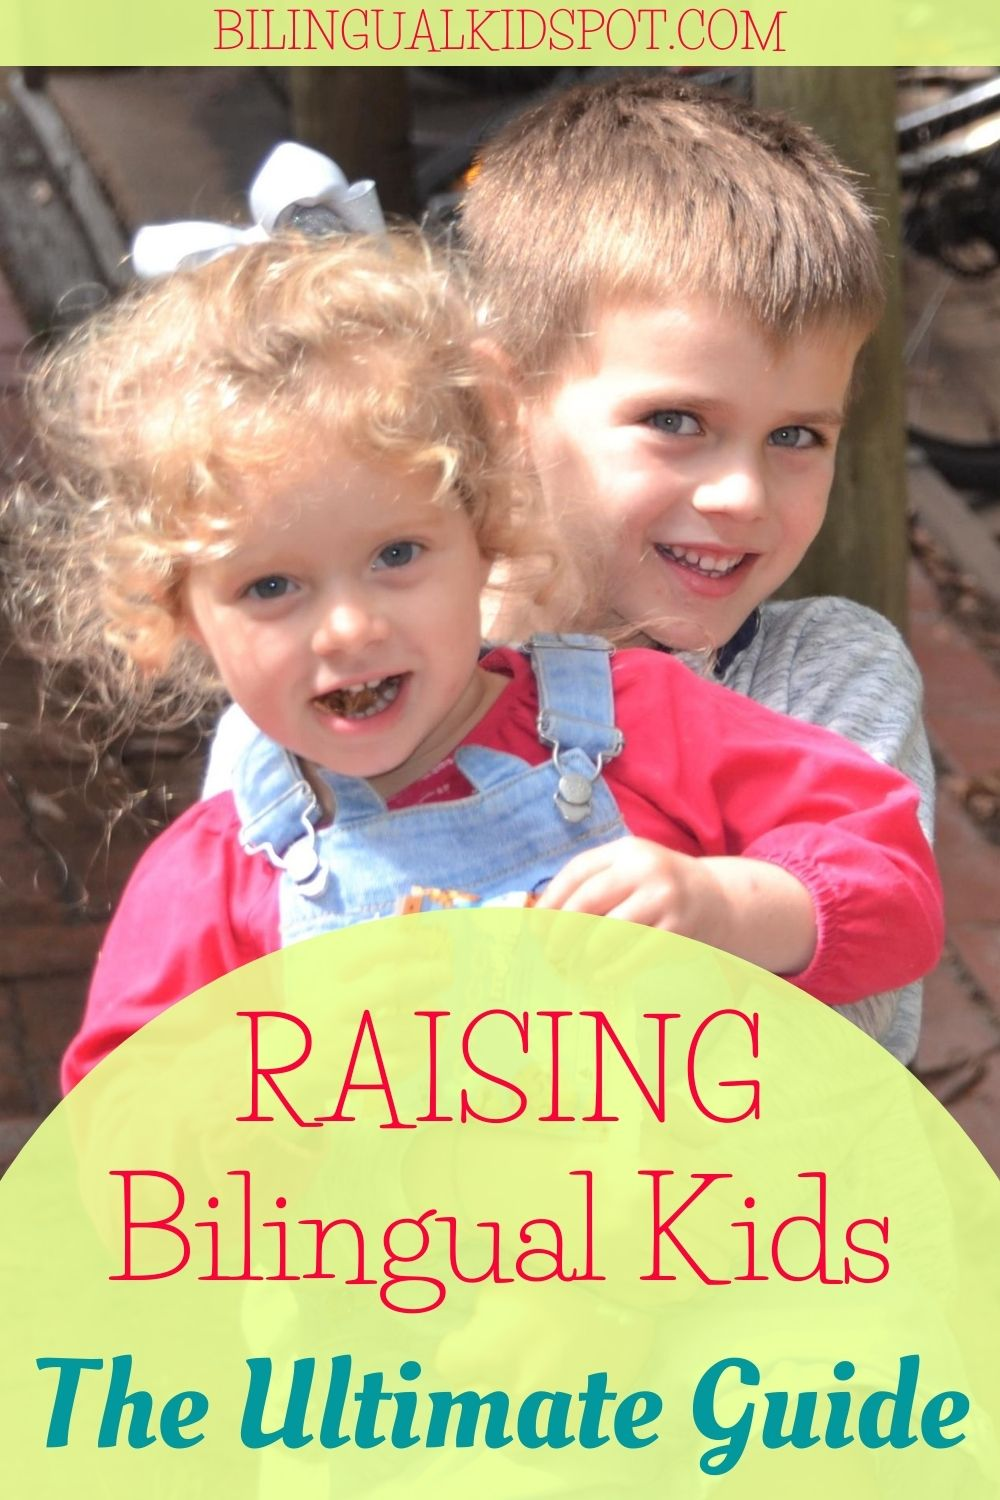 How to Raise Bilingual Kids Guide